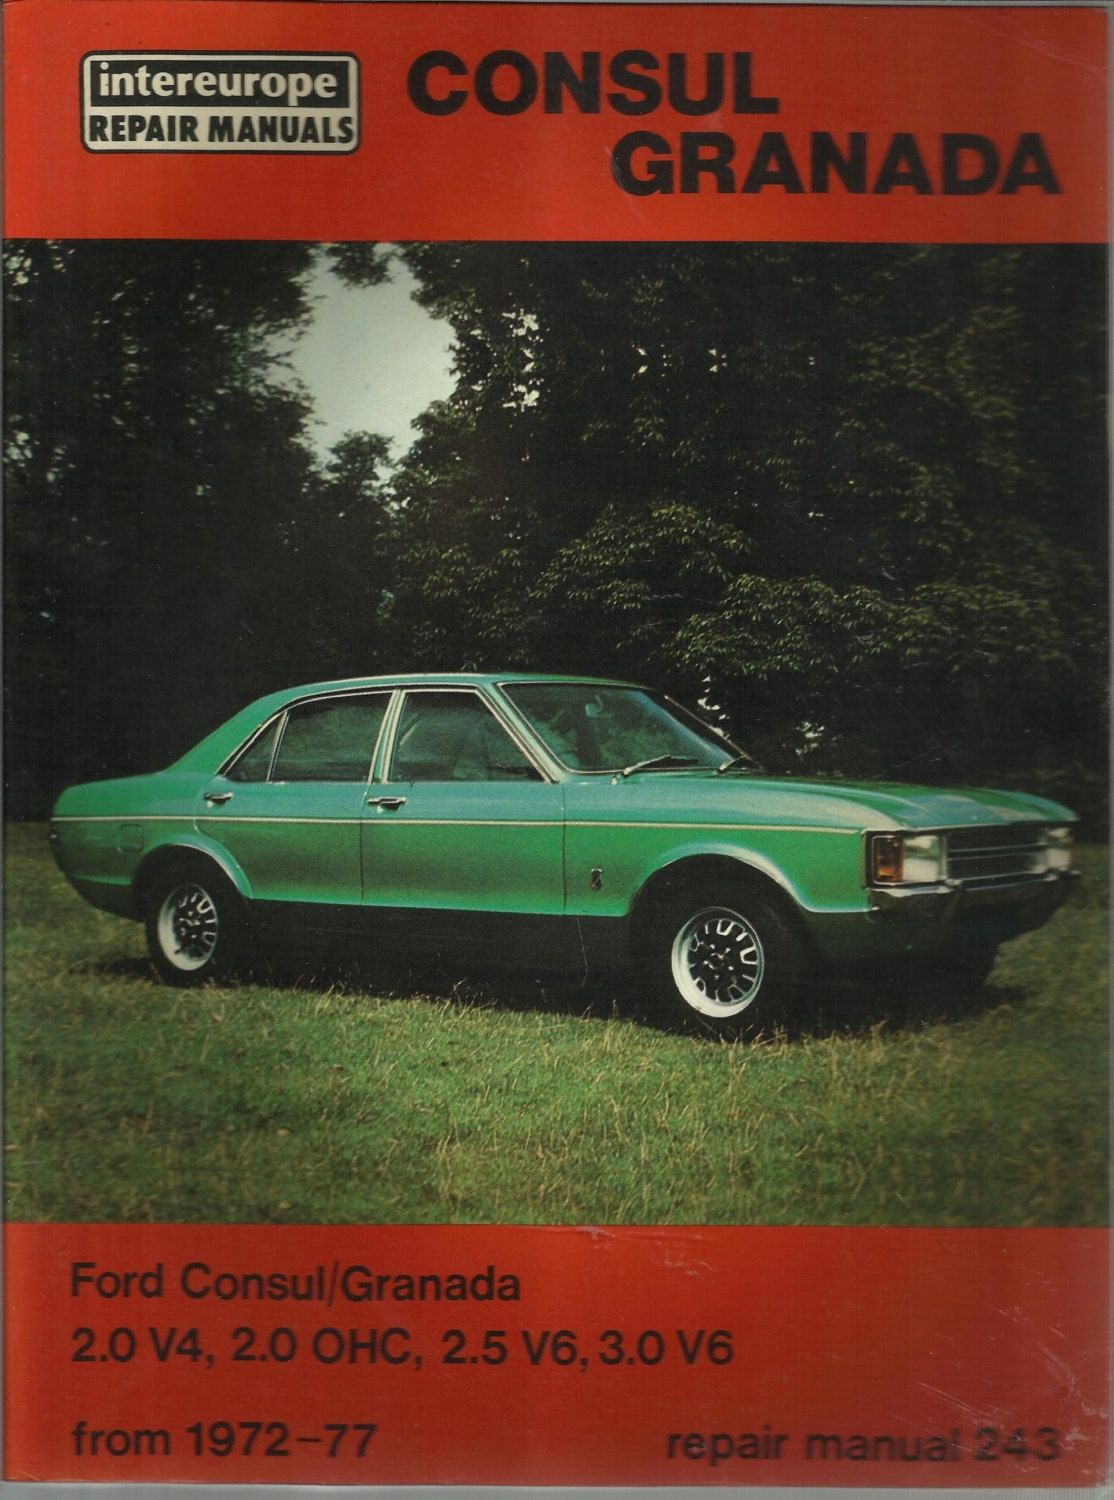 Ford Consul Granada Owner S Workshop Manual Car Handbook 1972 To 1977 Purchase In Store Here Http Www Europeanvintageemporium Com Product Ford Consul Gran